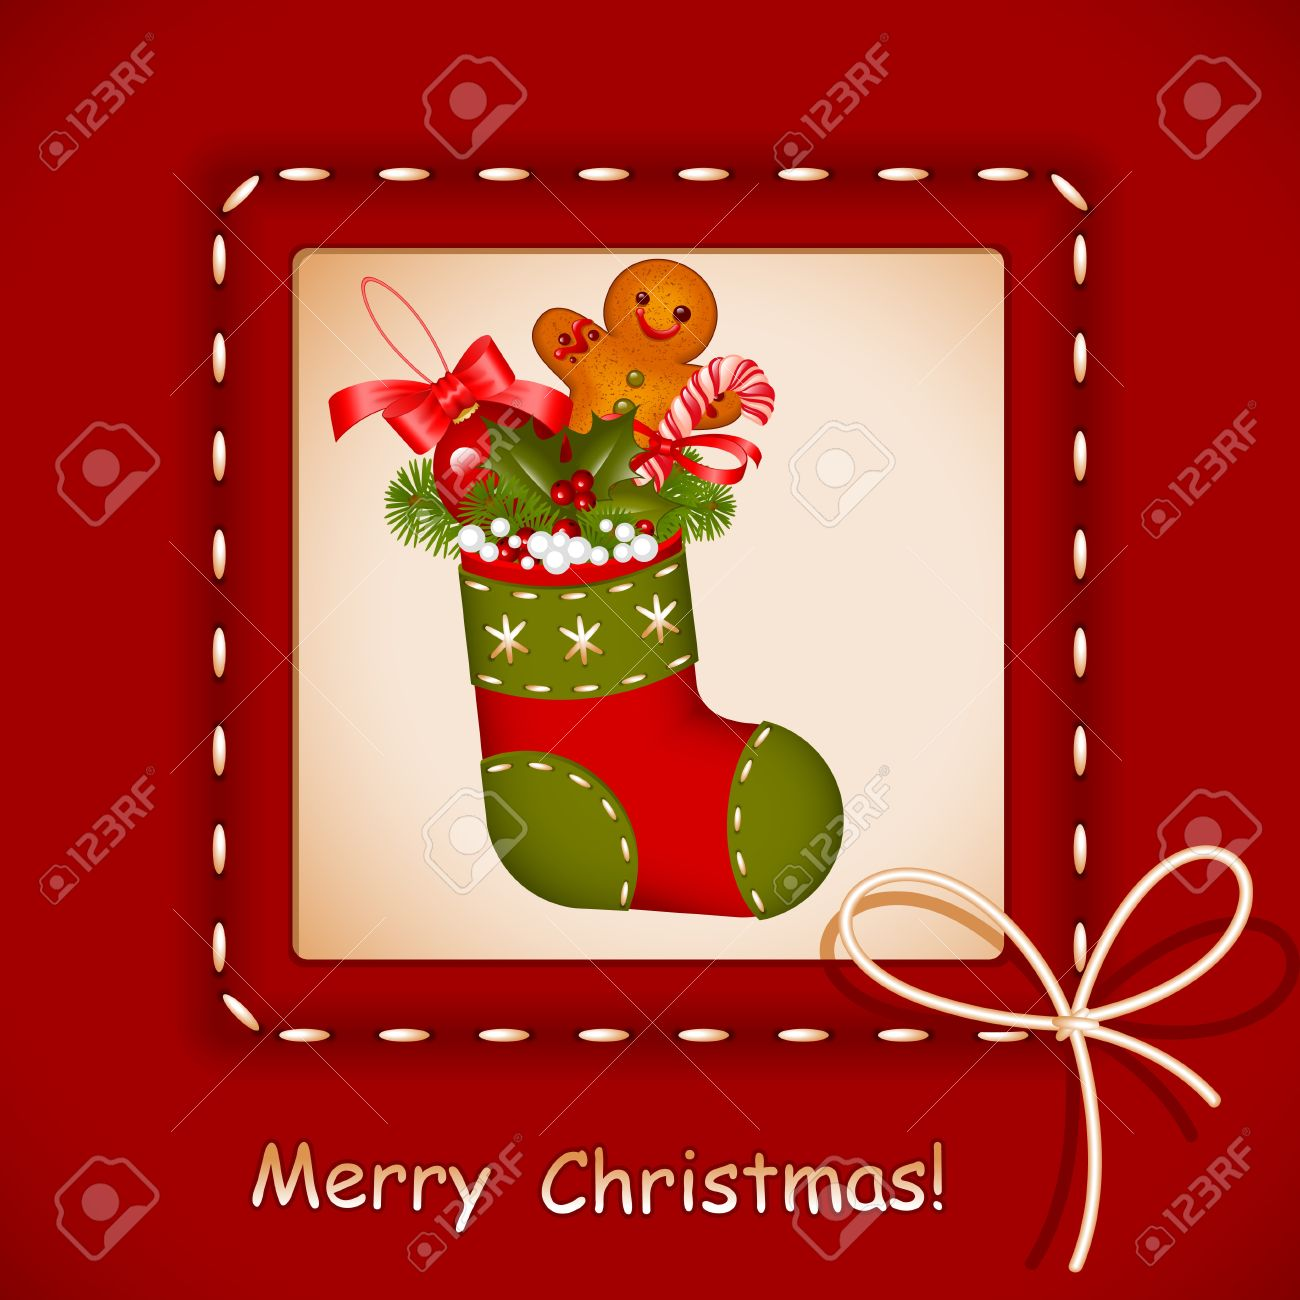 Christmas card. stocking with red ball christmas, cookies, candy and holly berry in frame with bow. Congratulation Merry Christmas. Vector illustration. - 11355046